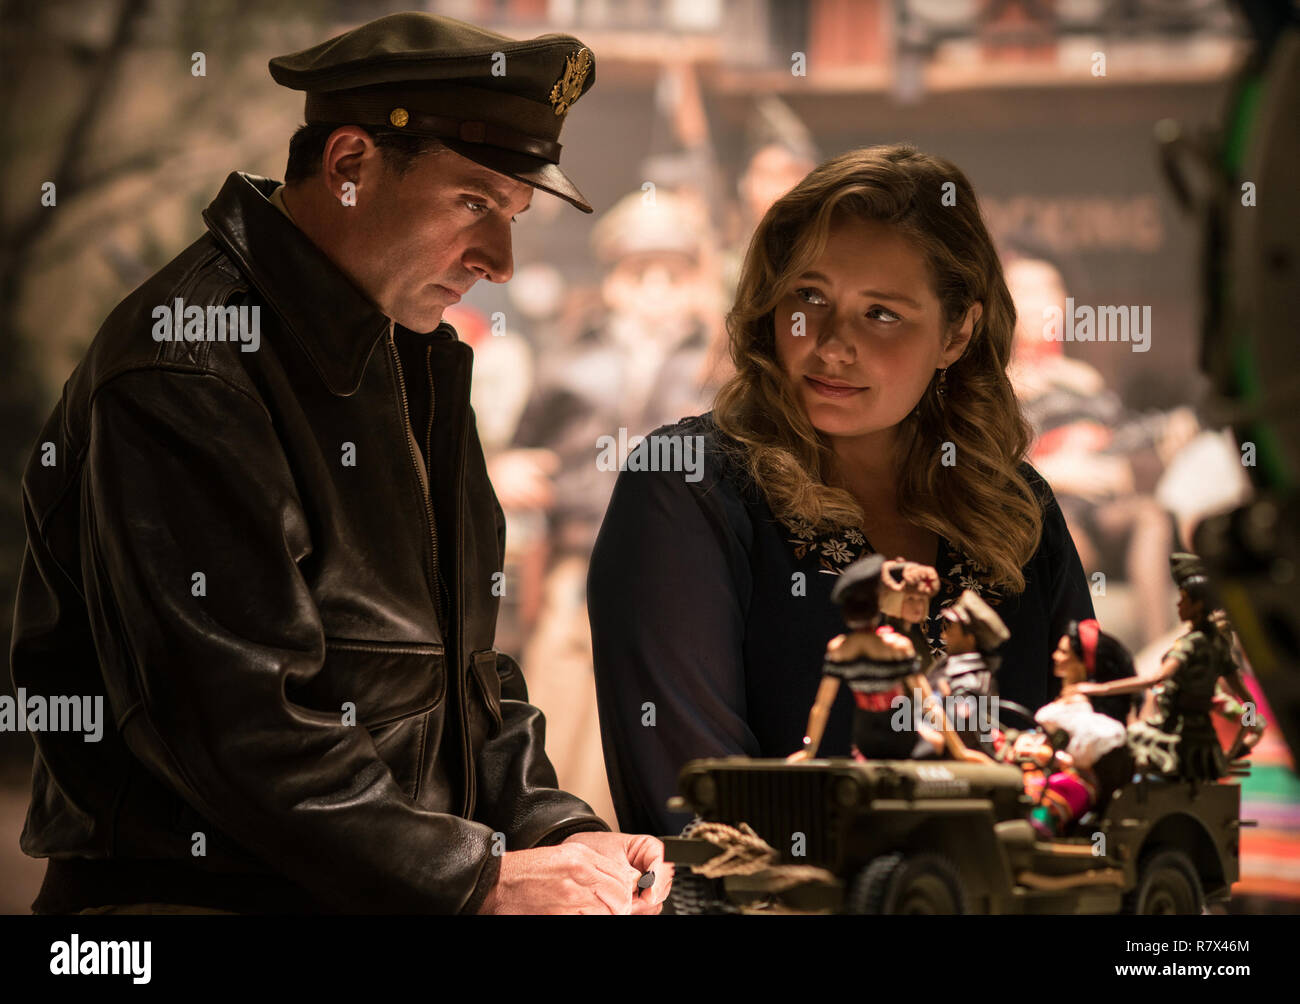 Mark Hogancamp (Steve Carell) and his supportive friend Roberta (Merritt Wever) with the dolls of Mark's fictional town in 'Welcome to Marwen,' directed by Robert Zemeckis.  Photo Credit: Universal Pictures and Storyteller Distribution Co., LLC. / The Hollywood Archive - Stock Image